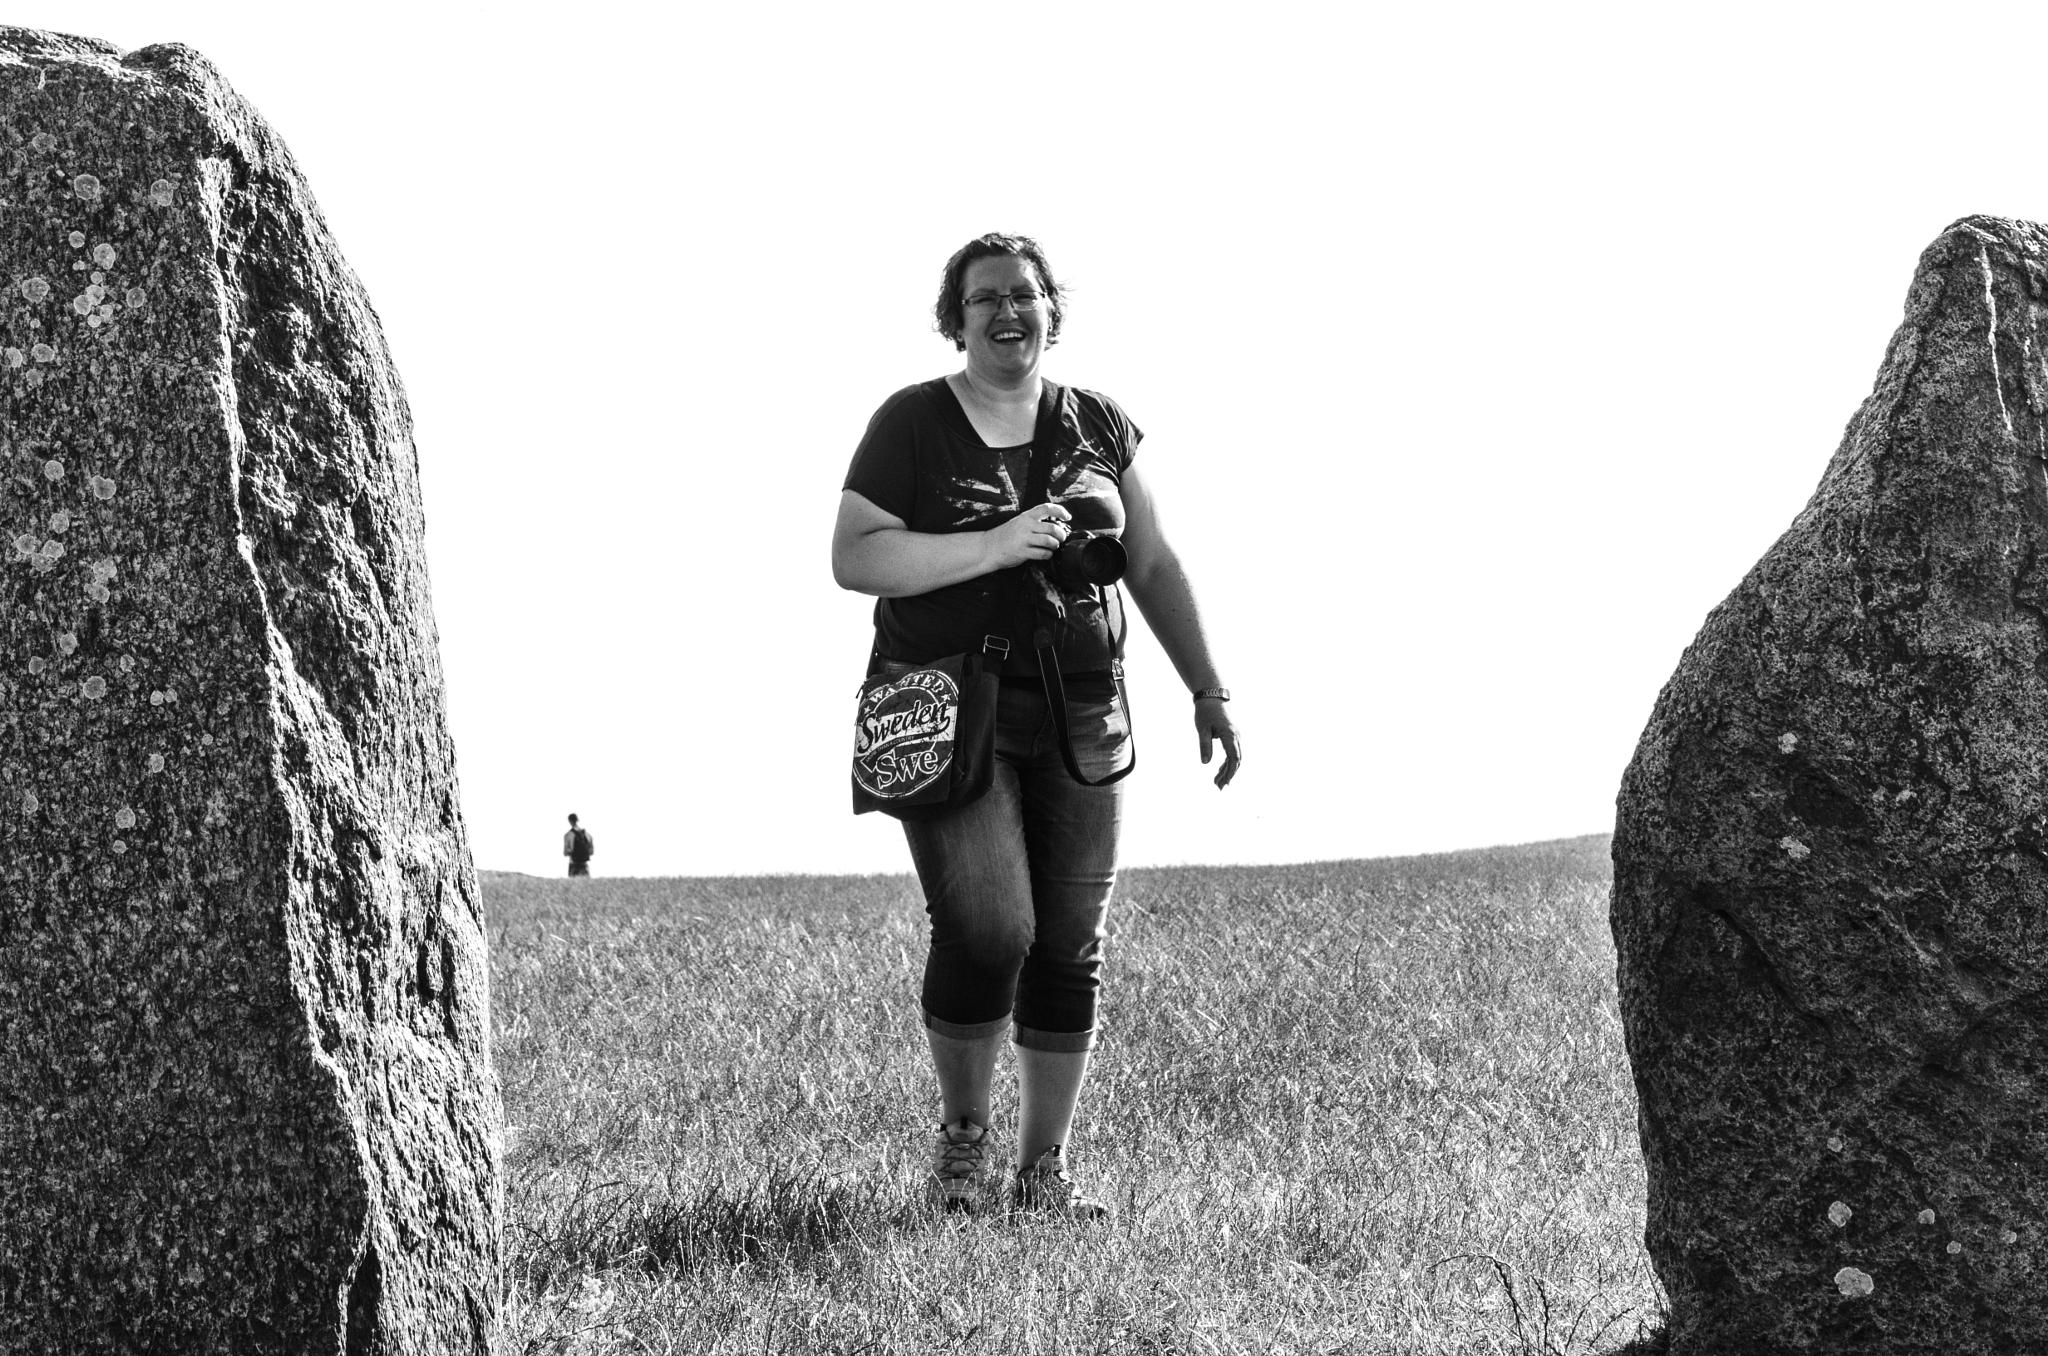 My beloved wife at the Ale stones by Johnny Lythell